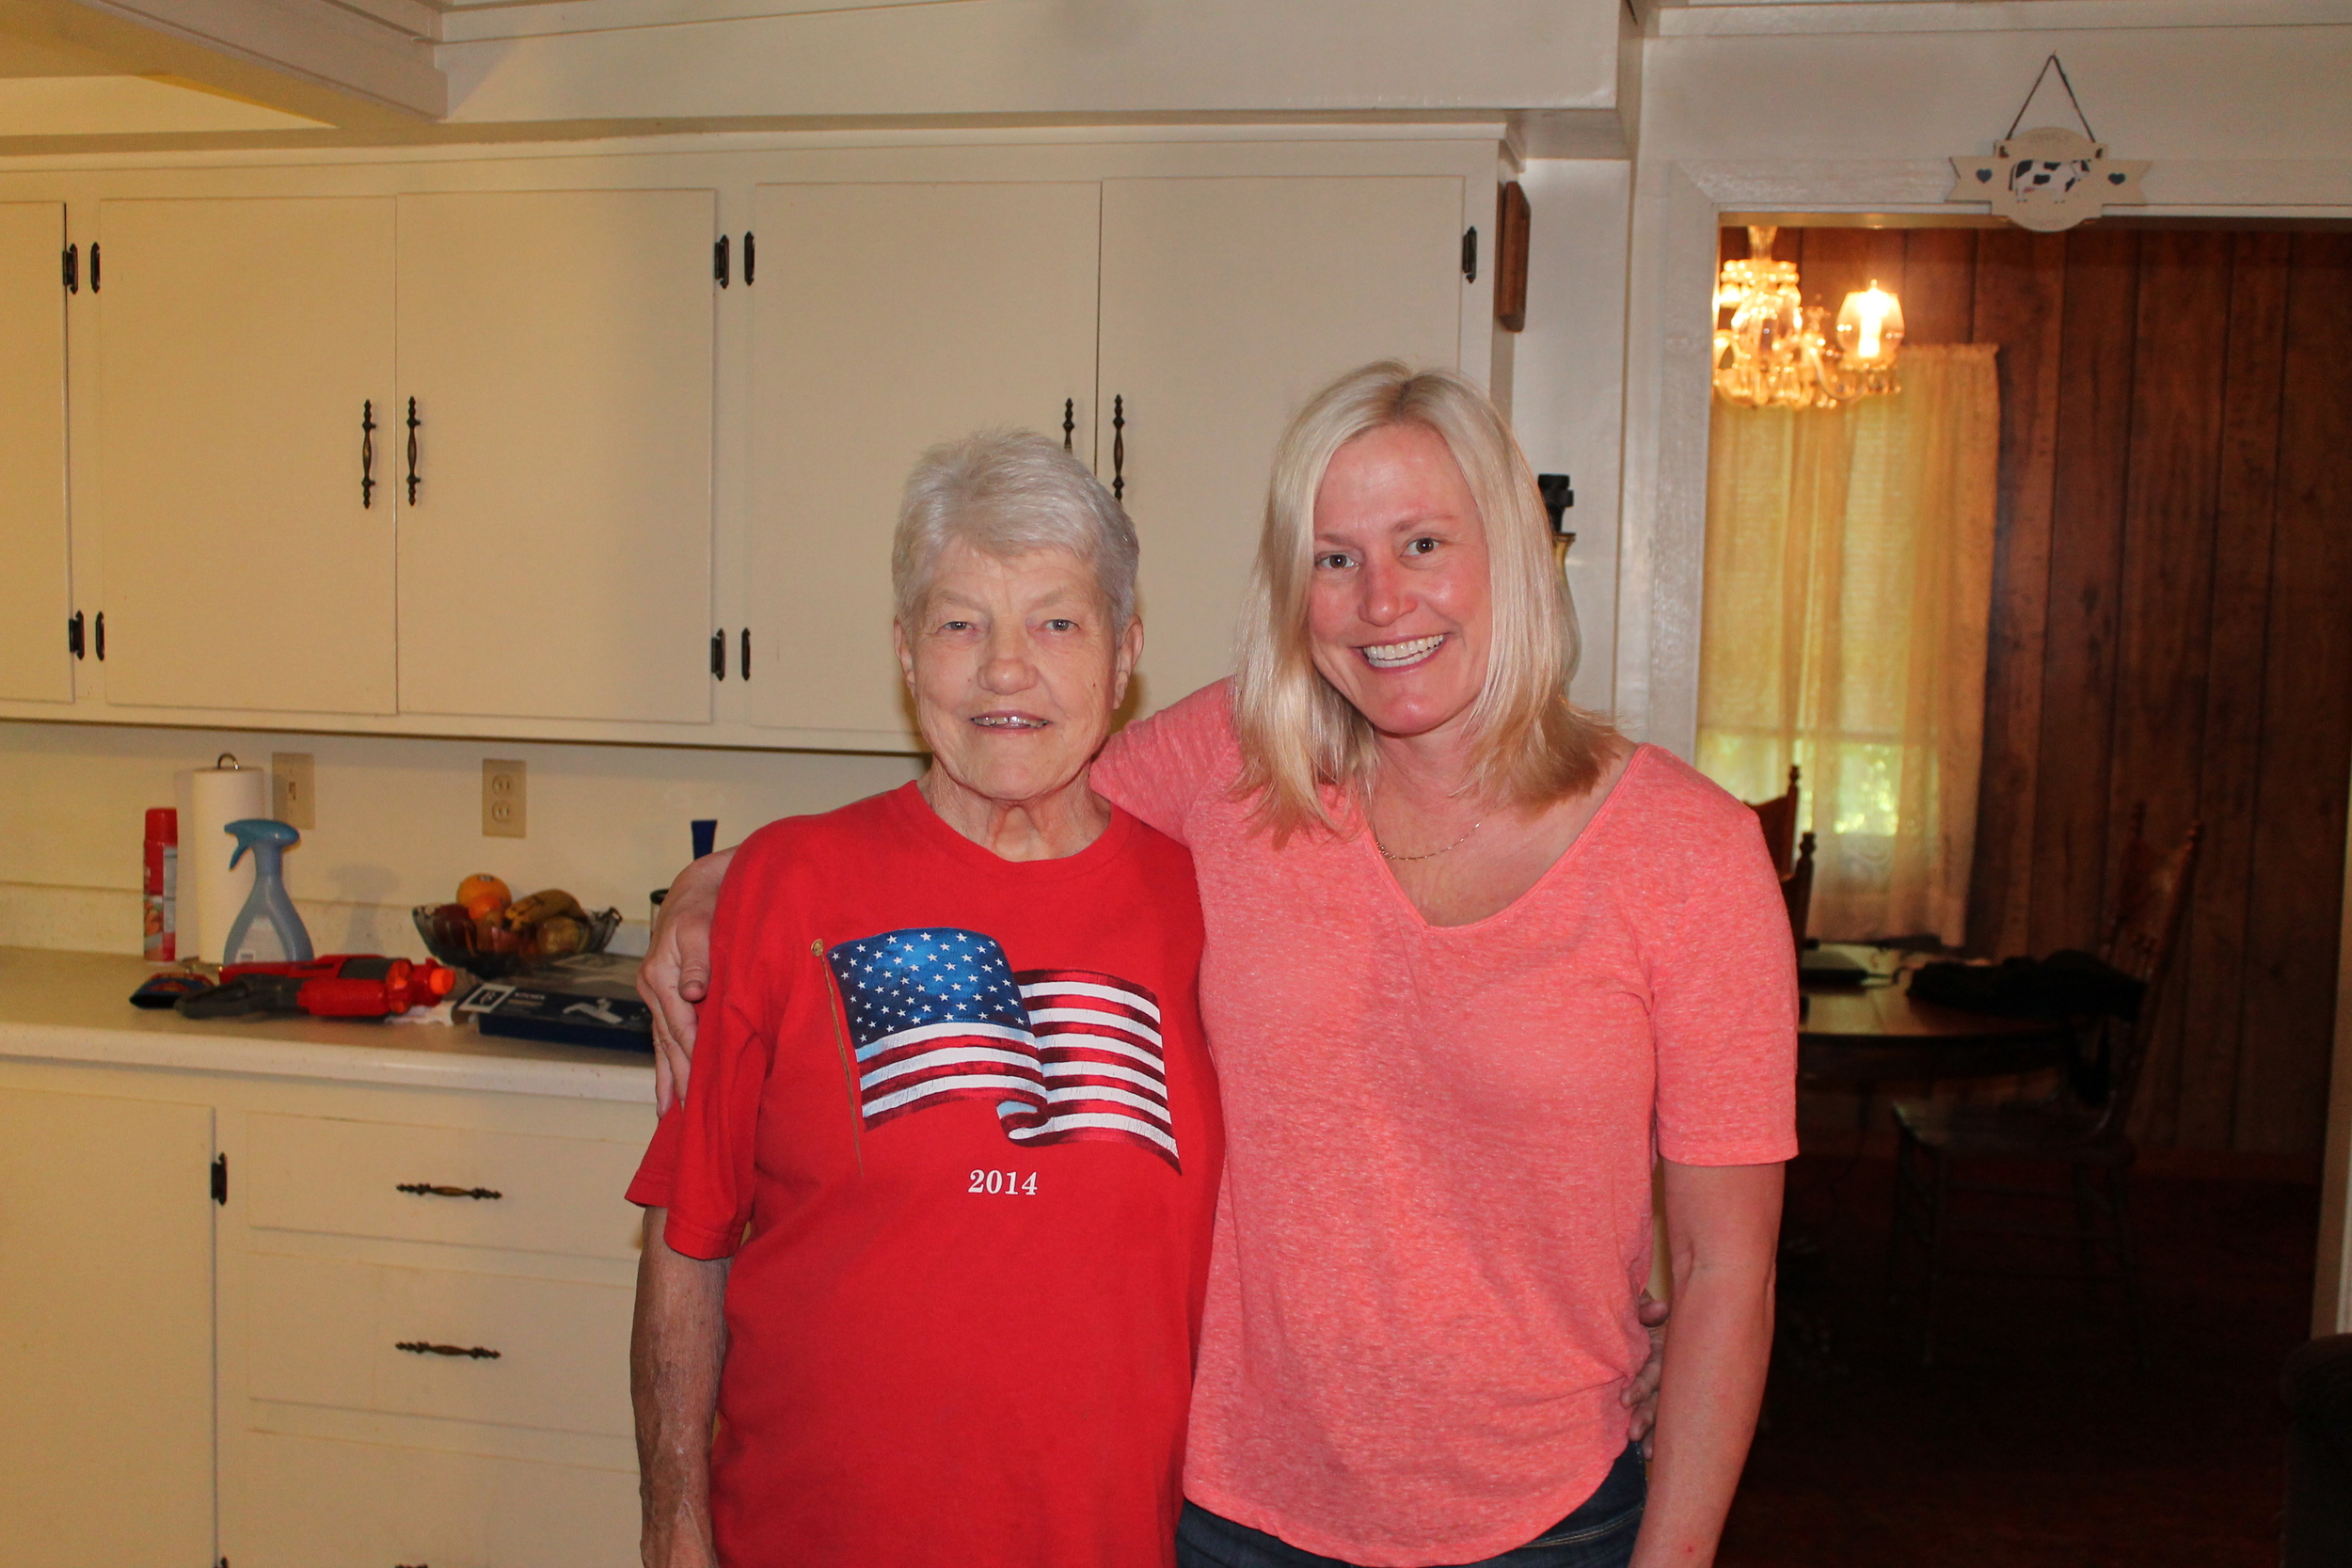 Aunt Linda and me. She's my mom's sister, and is a second mother to me.